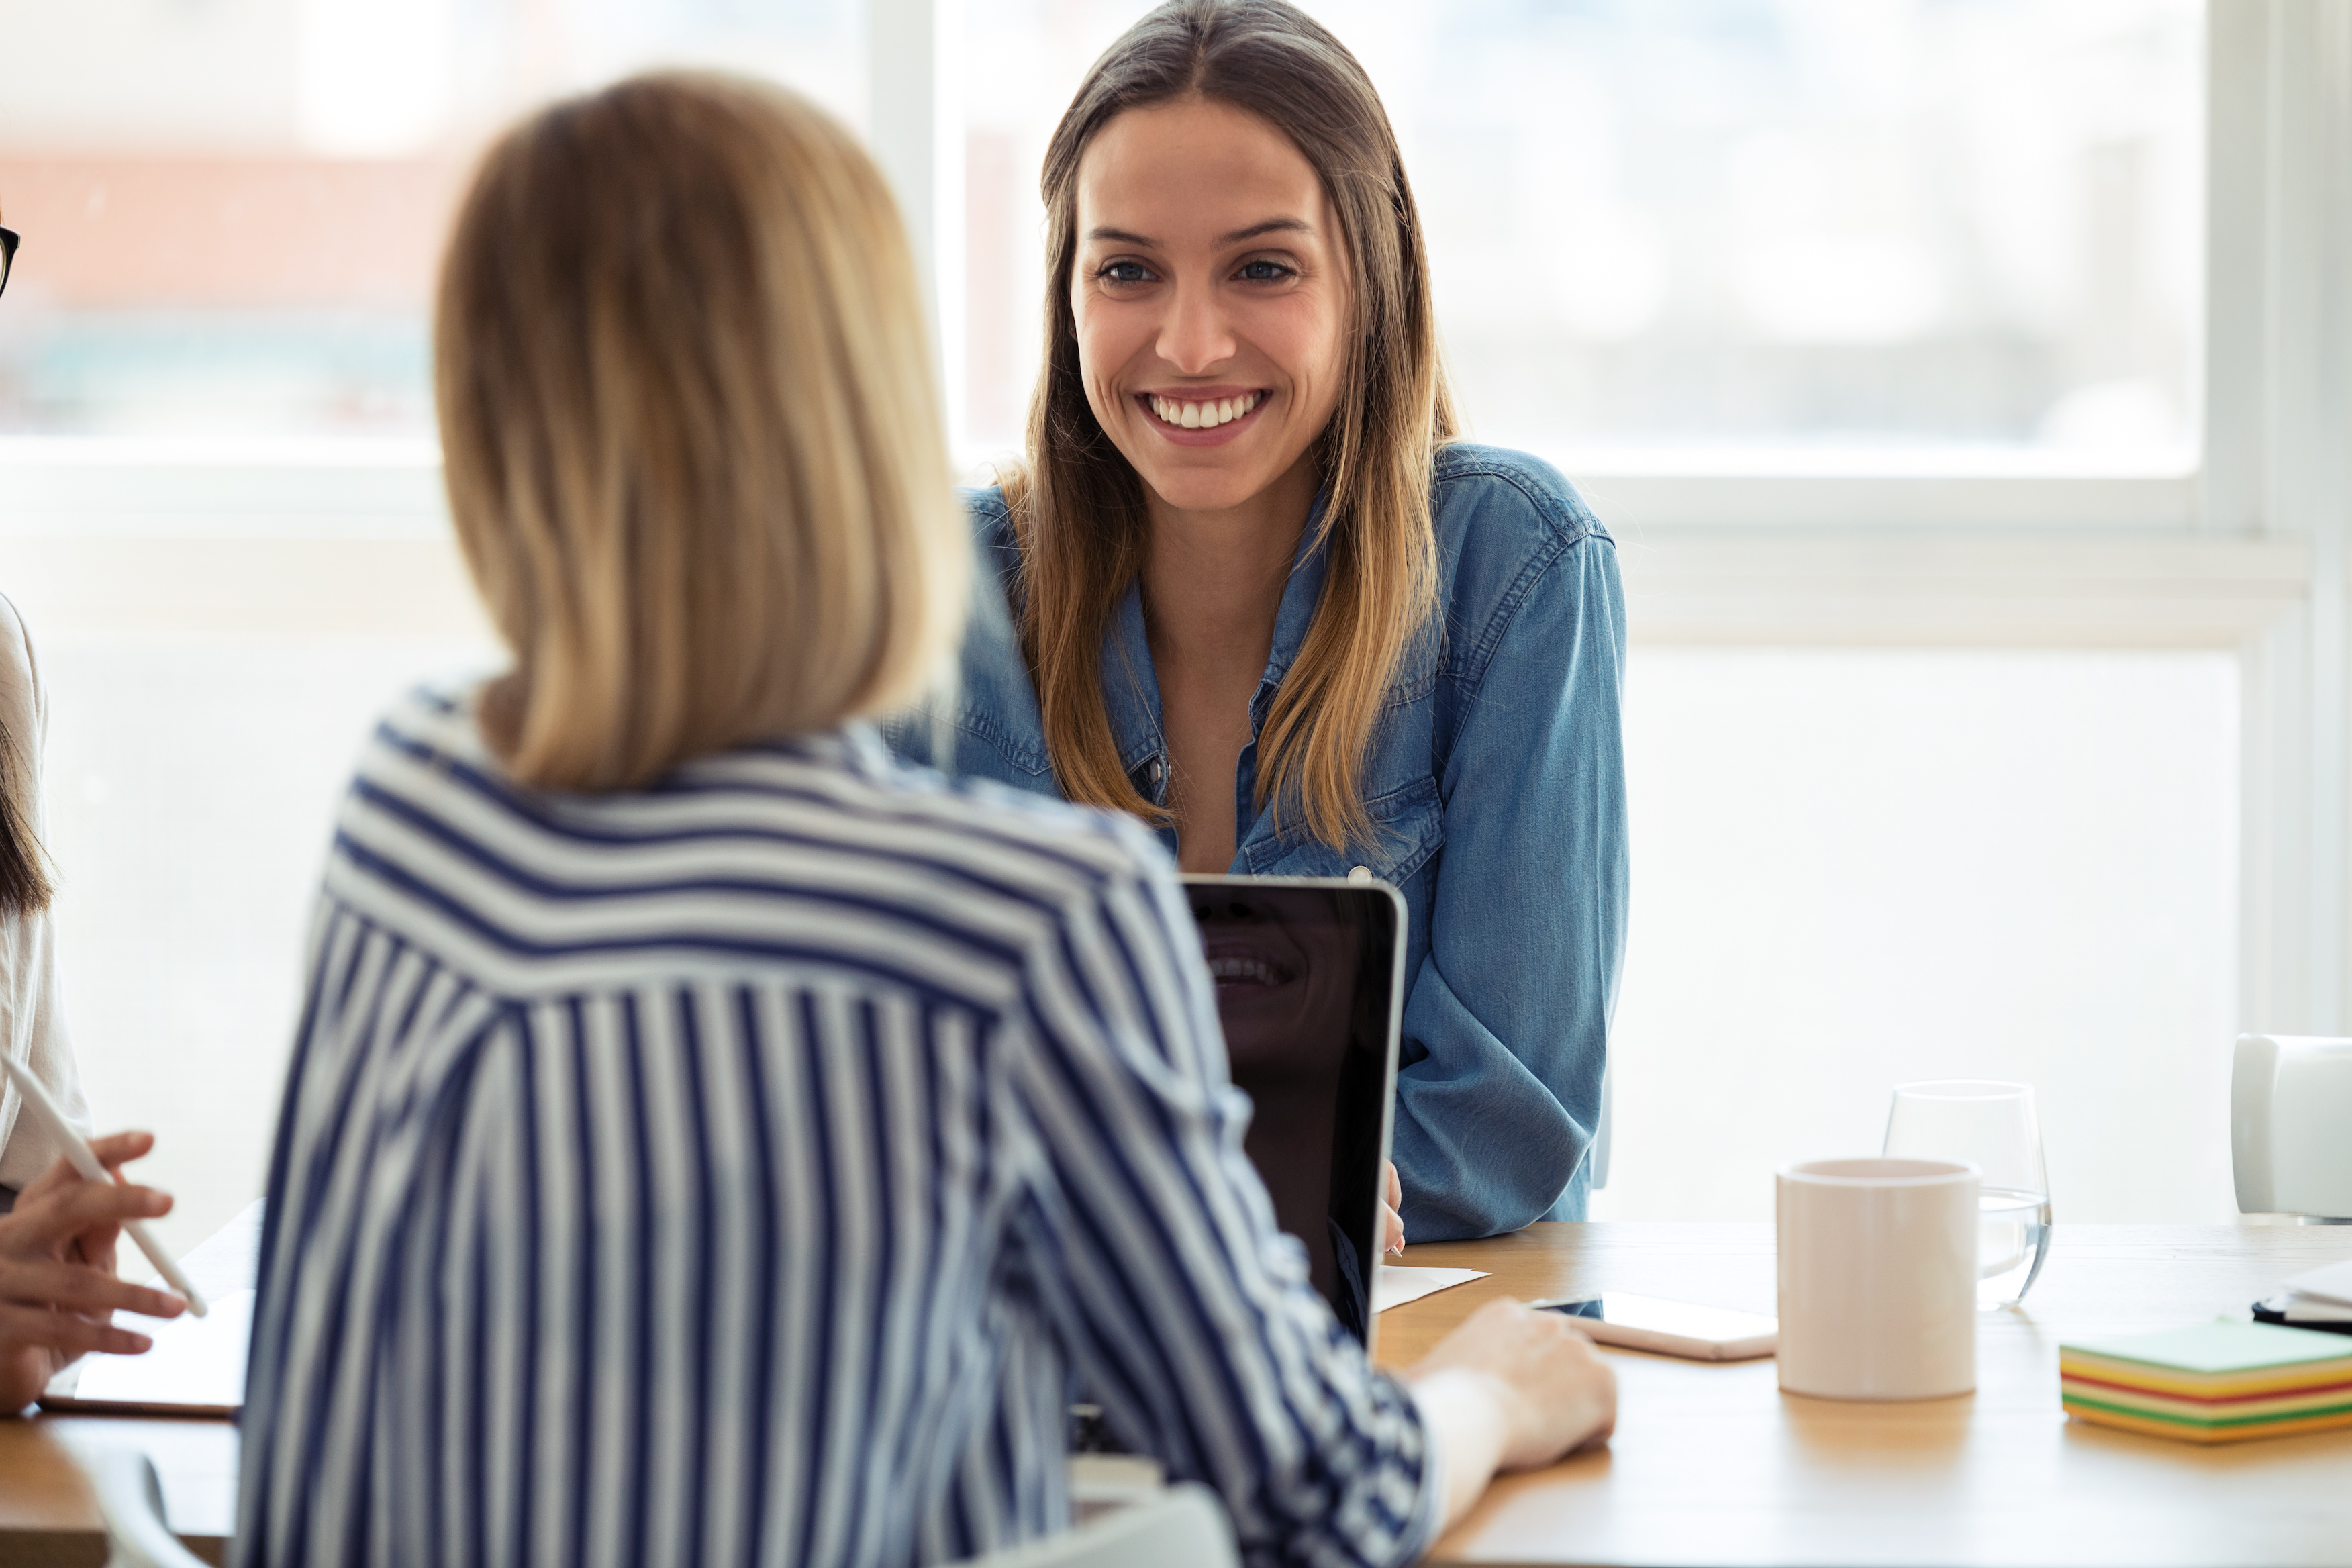 4 Best Practices for Holding Exit Interviews - Style Nine to Five